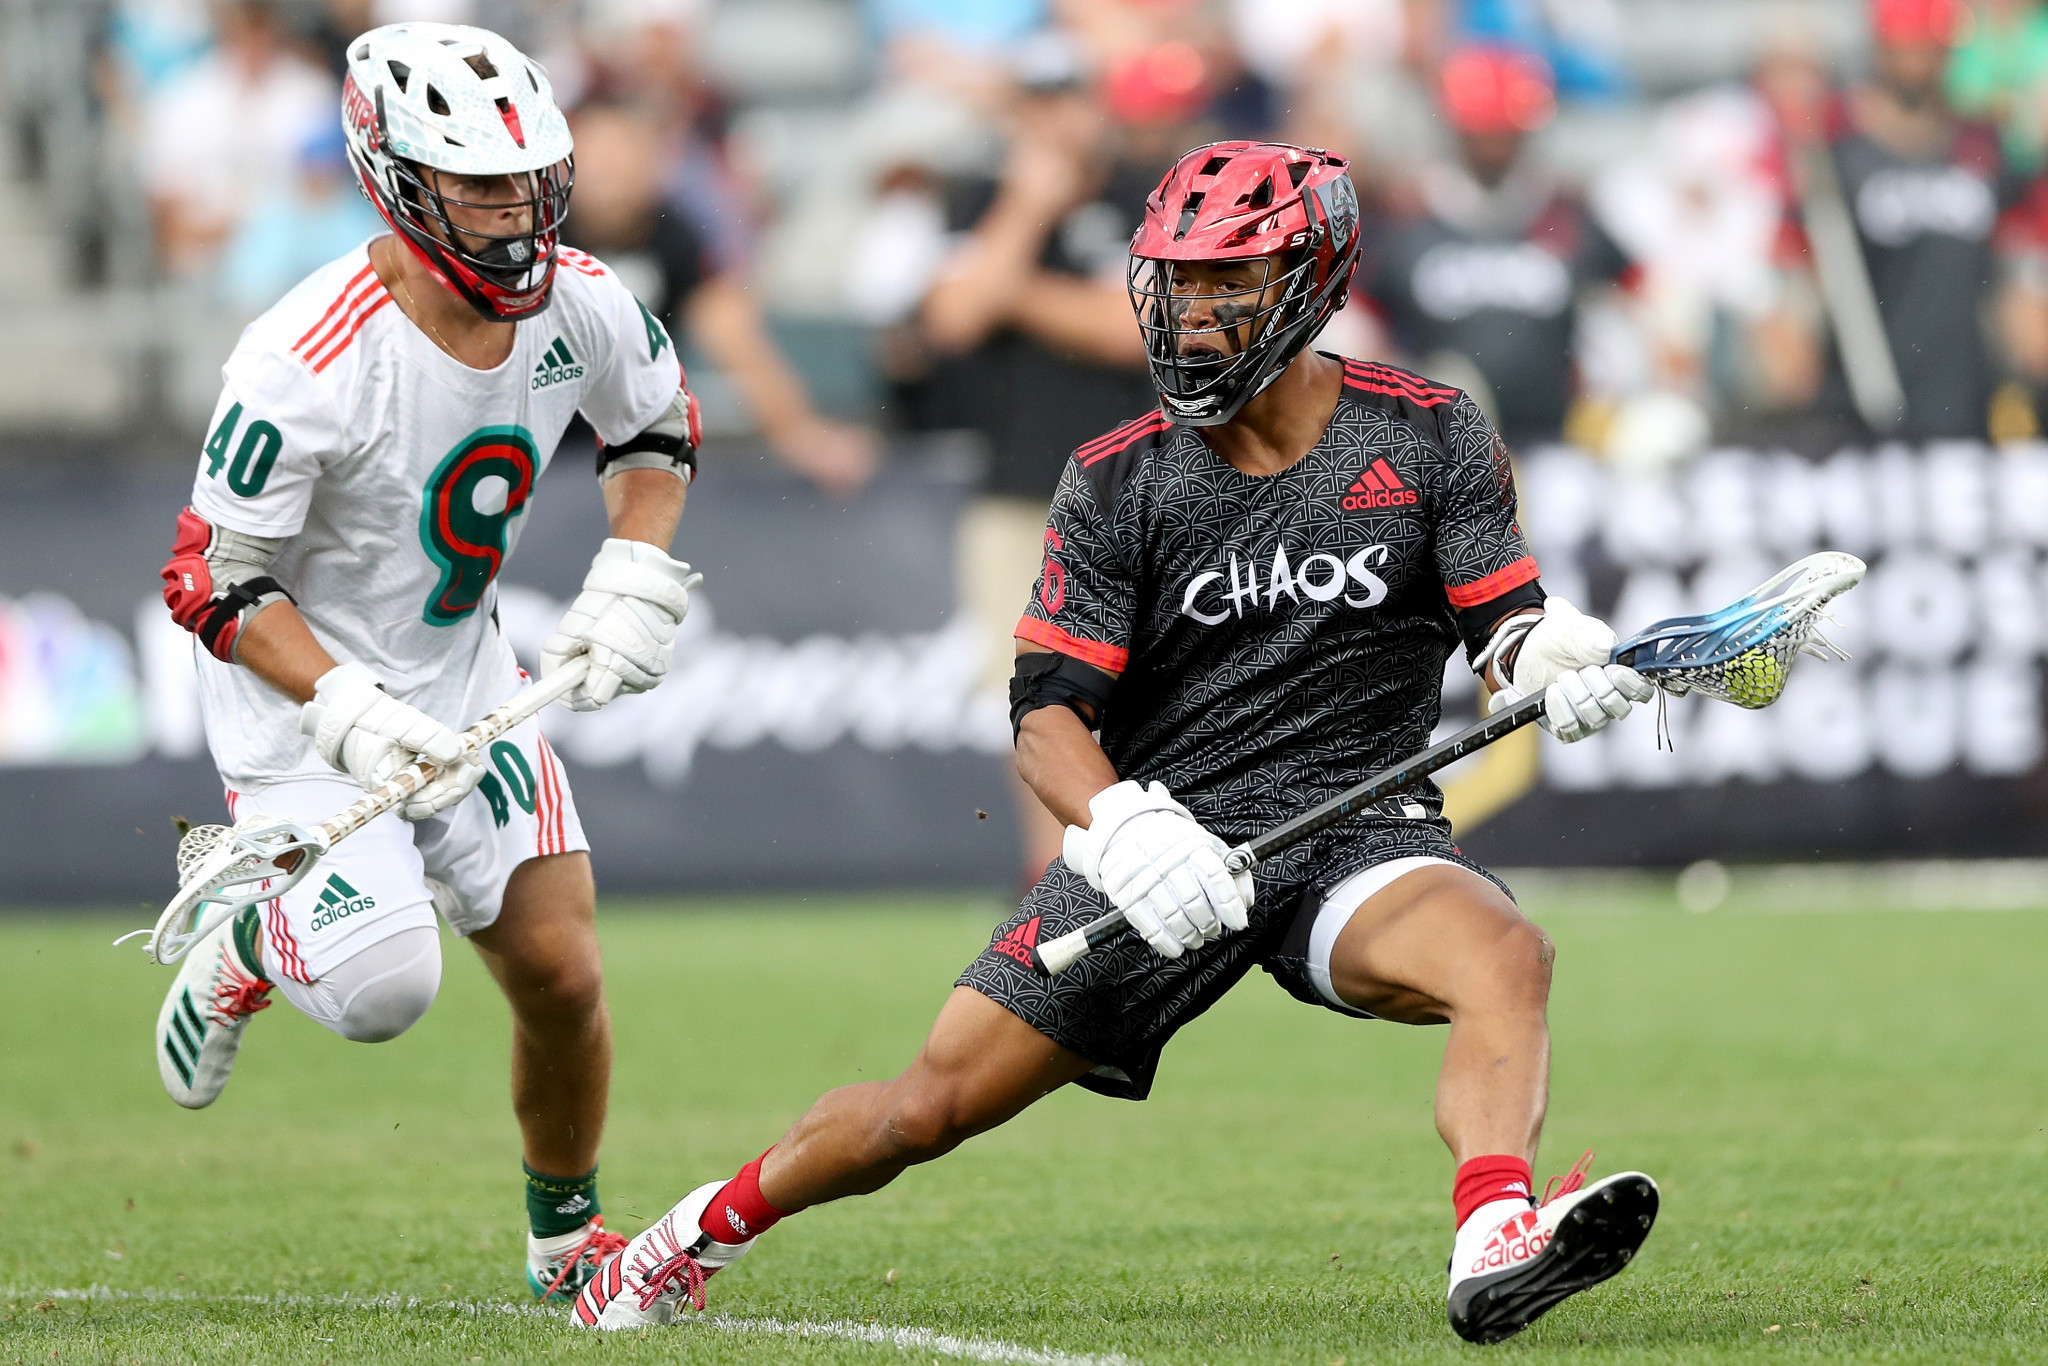 This year's Premier Lacrosse League season is to be held as a two-week tournament due to the pandemic ©Getty Images